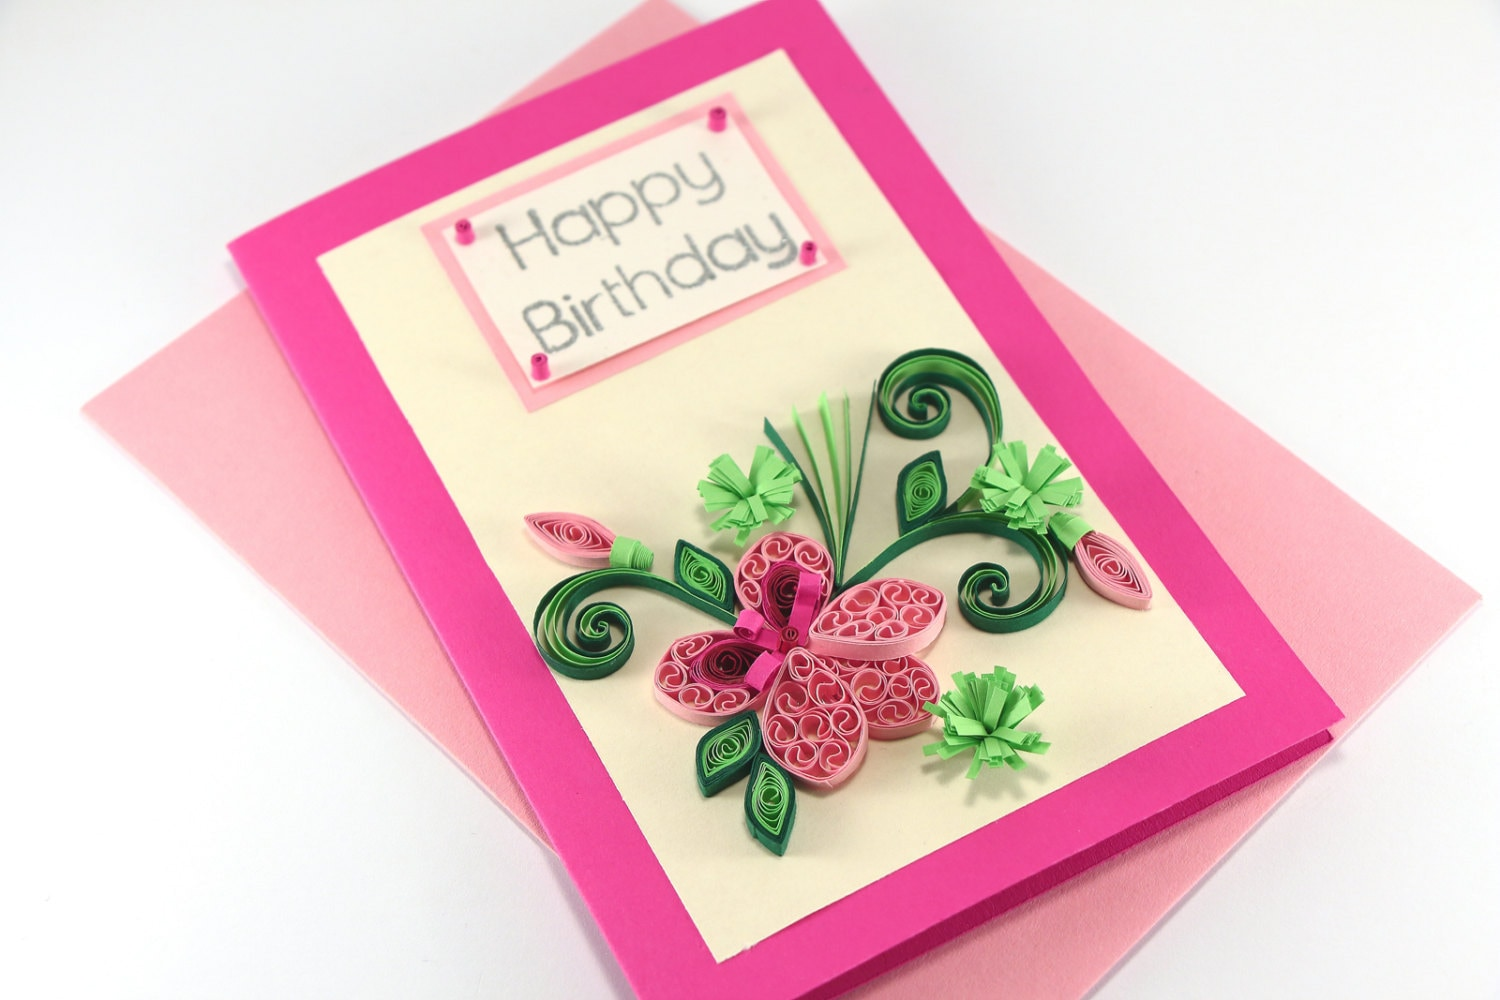 Happy birthday card handmade quilling flower for mom zoom thecheapjerseys Images